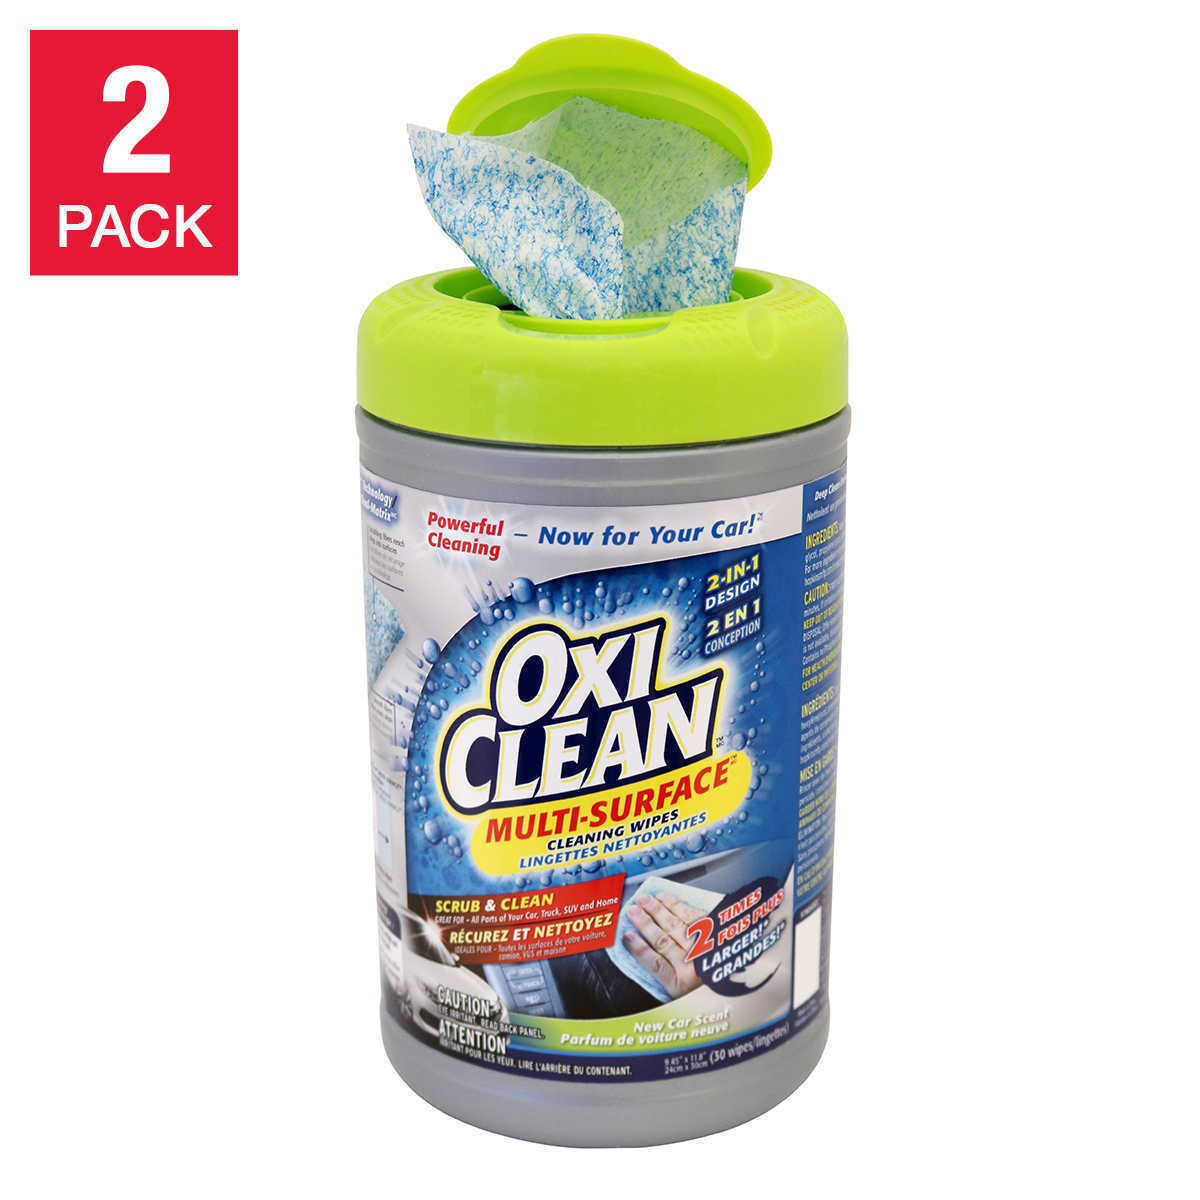 Oxi Clean Duo Wipes Multi Purpose Cleaning Towels - Total of 60 count (2 Pack)